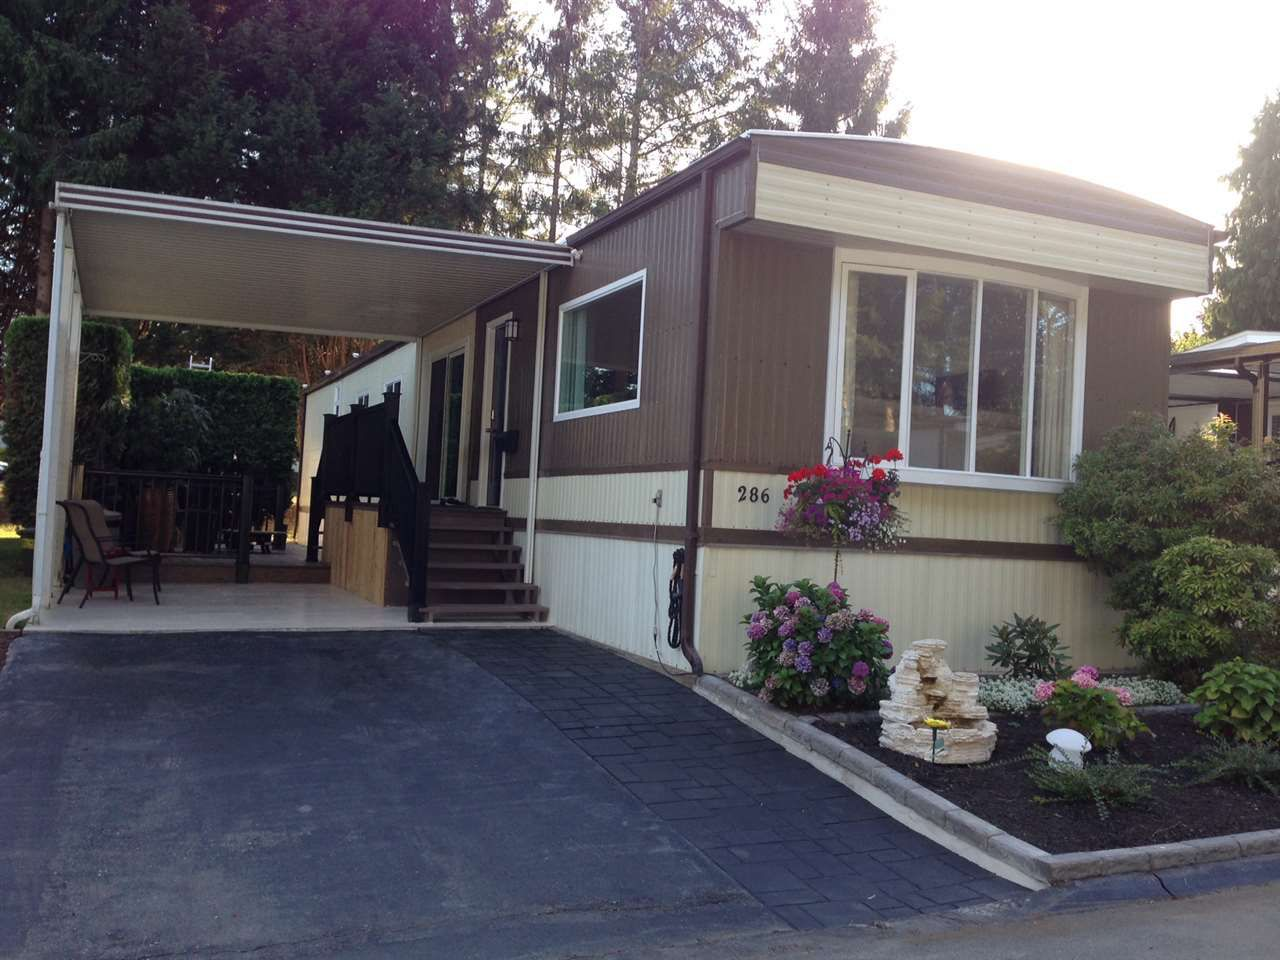 """Main Photo: 286 1840 160 Street in Surrey: King George Corridor Manufactured Home for sale in """"Breakaway Bays"""" (South Surrey White Rock)  : MLS®# R2197589"""